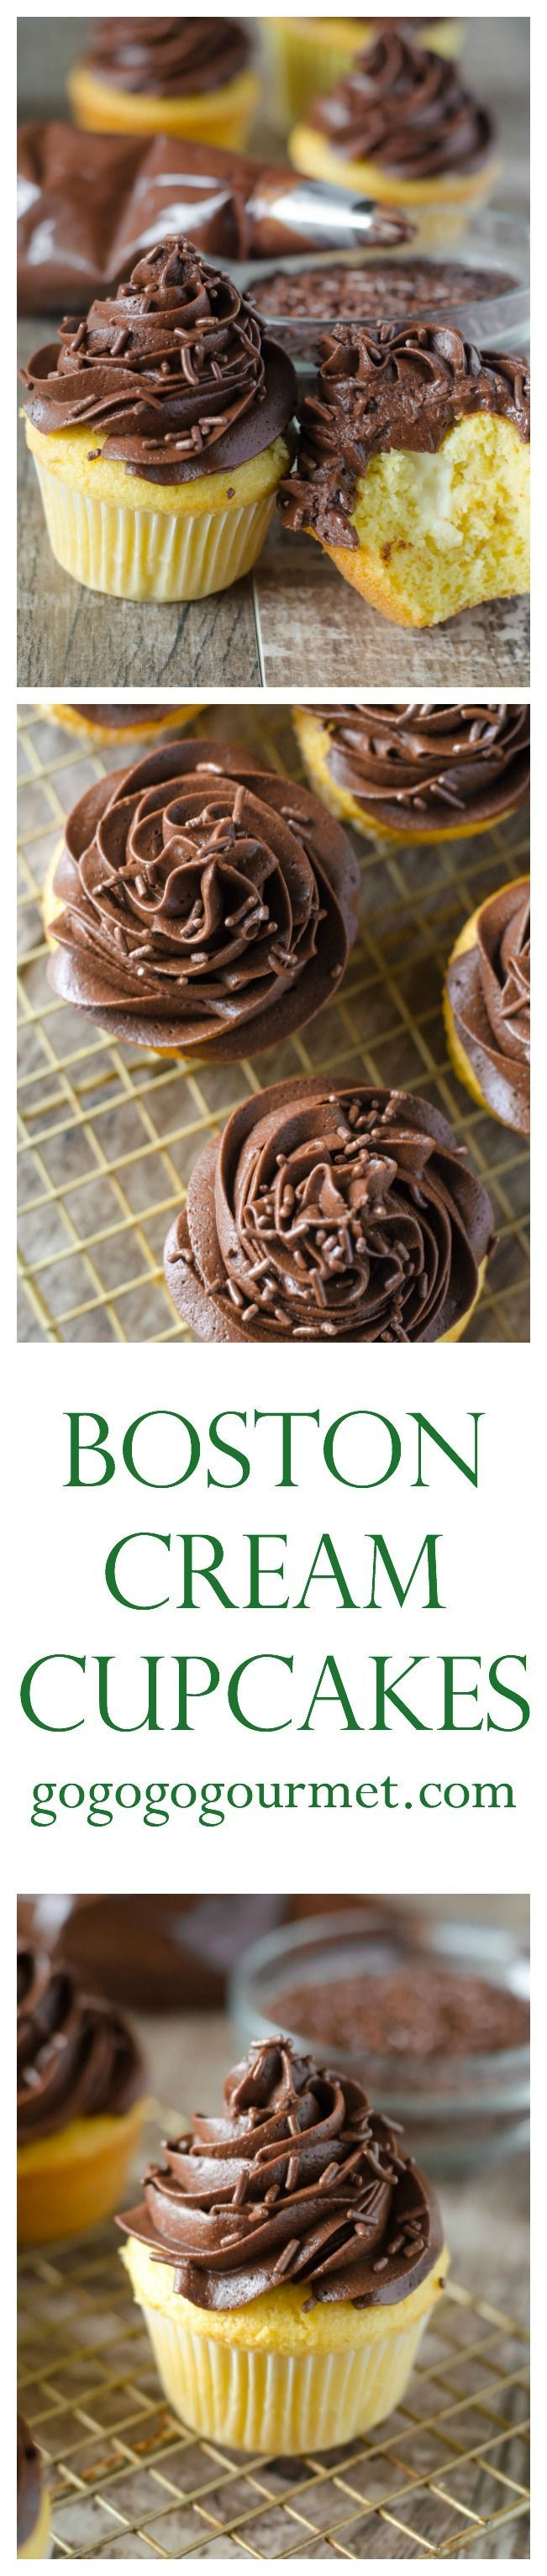 These cupcakes are UNBELIEVABLE! Boxed cake mix is dressed up with a creamy custard filling and the BEST chocolate frosting known to man! Boston Cream Cupcakes | Go Go Go Gourmet /gogogogourmet/